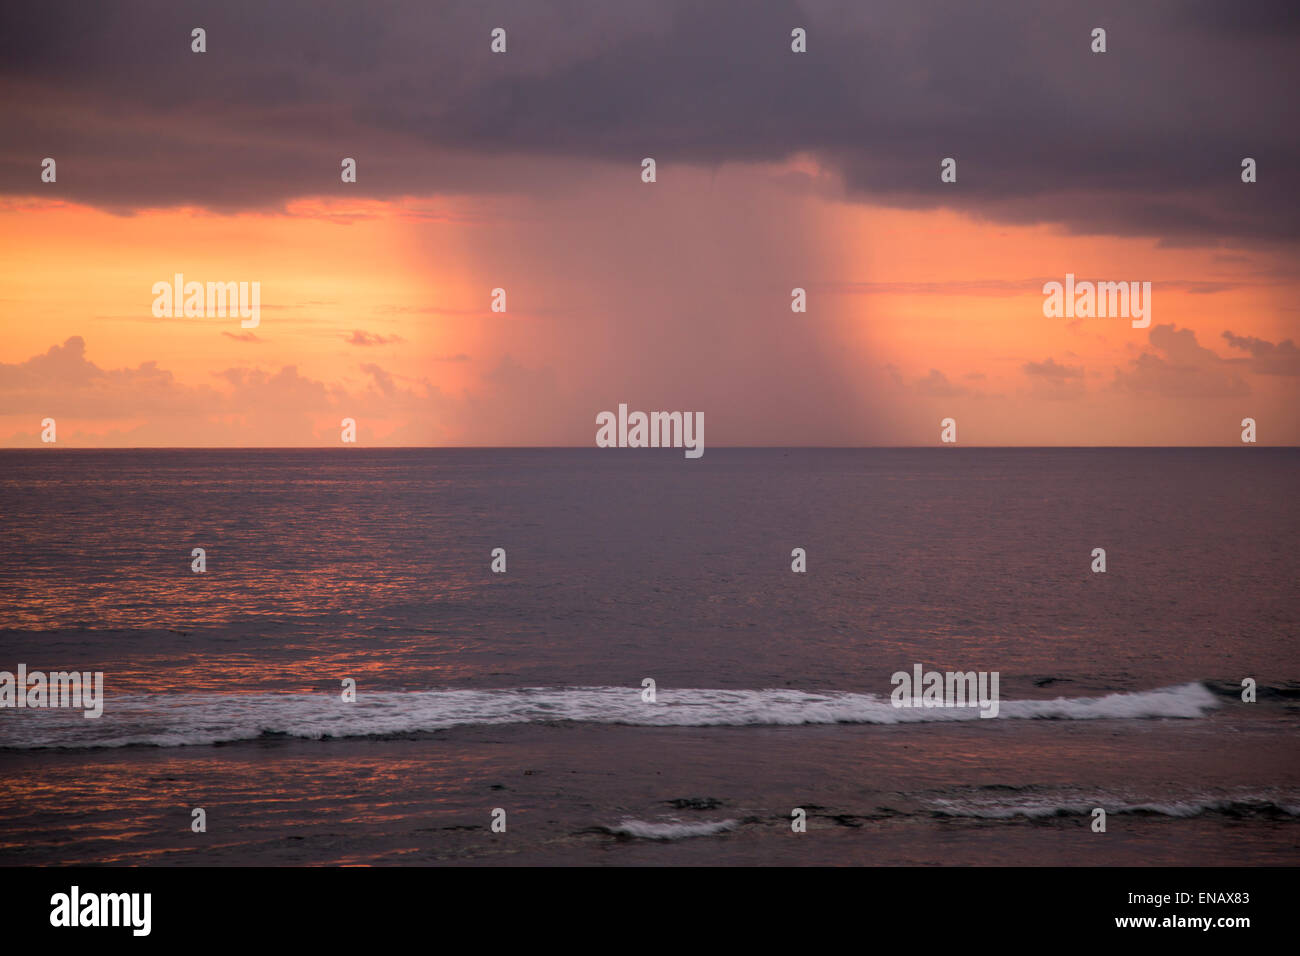 Rainstorm and clouds at sea at sunset viewed from Galle, Sri Lanka, Asia - Stock Image